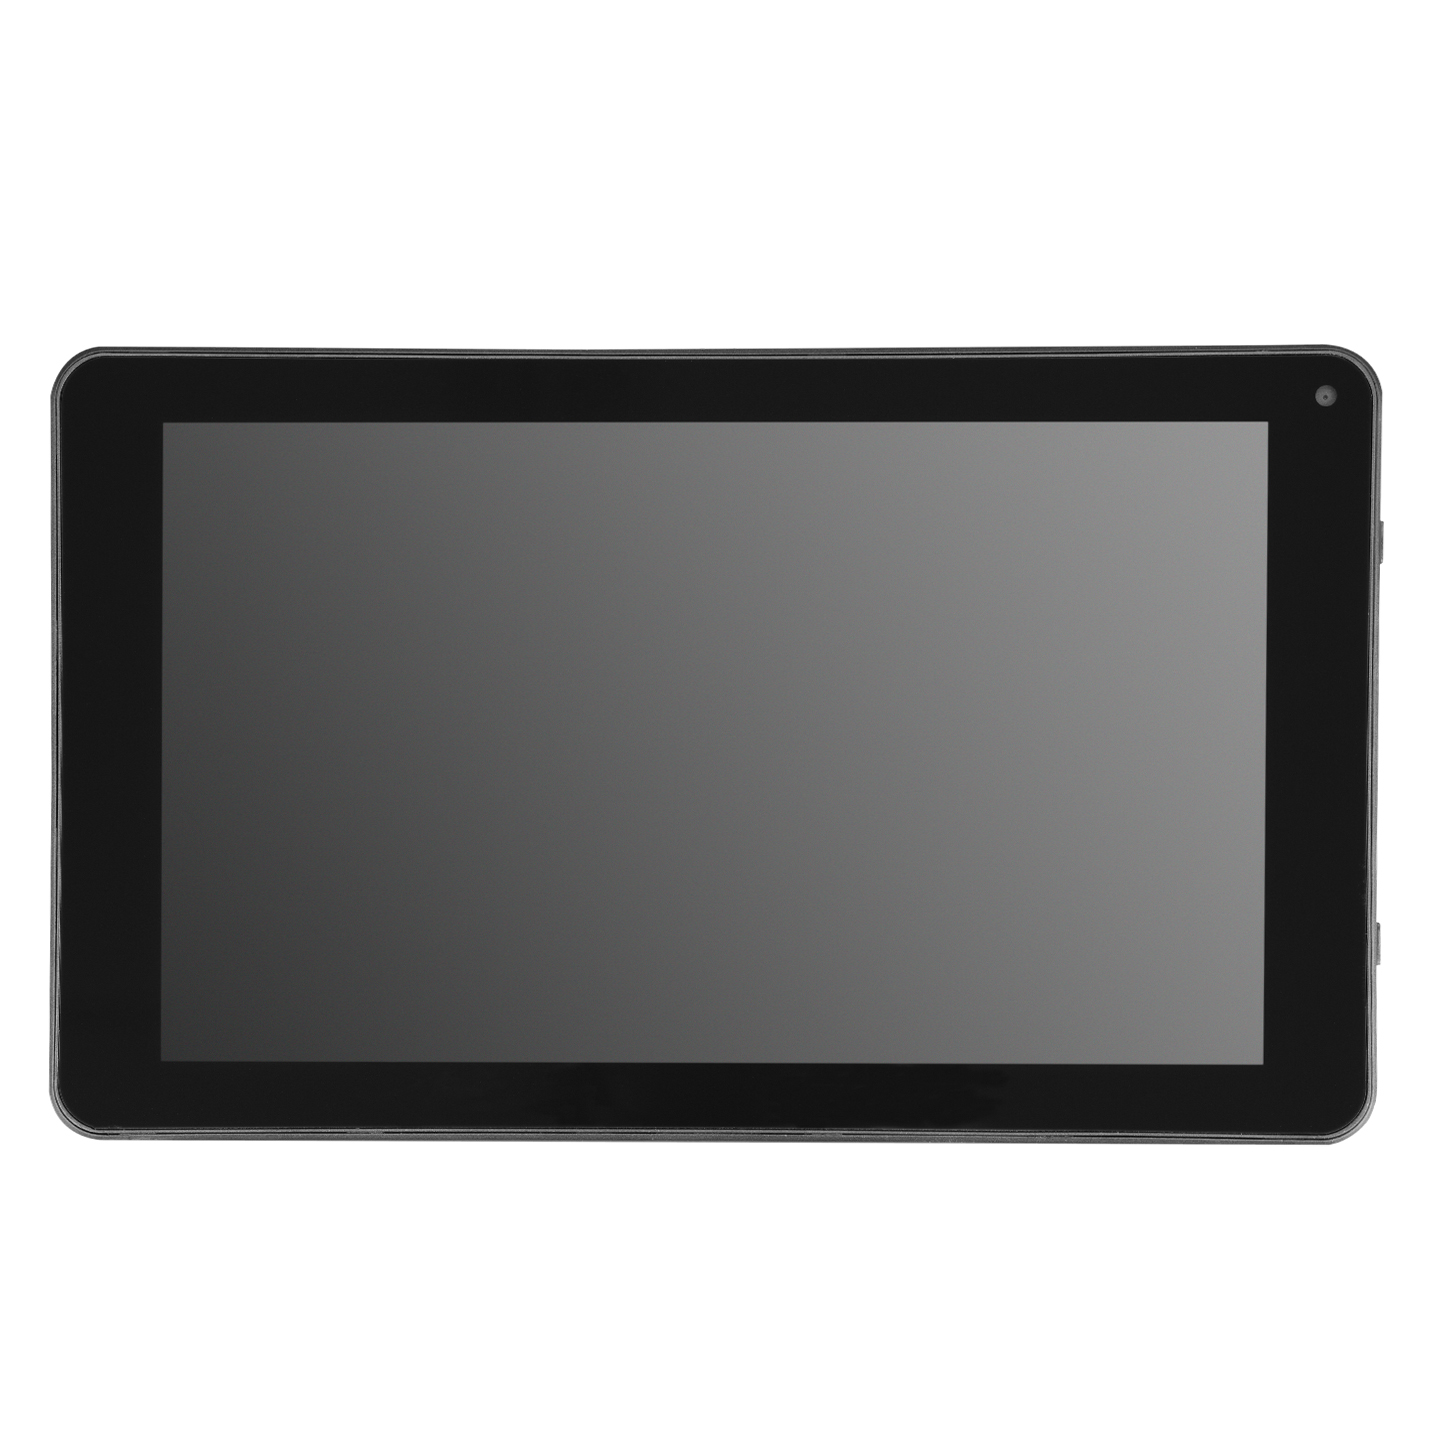 DENVER TAQ-90083 1GB+16GB Android 8.1 Go 1.2 GHZ Quad Core CPU 9'' Android Tablet